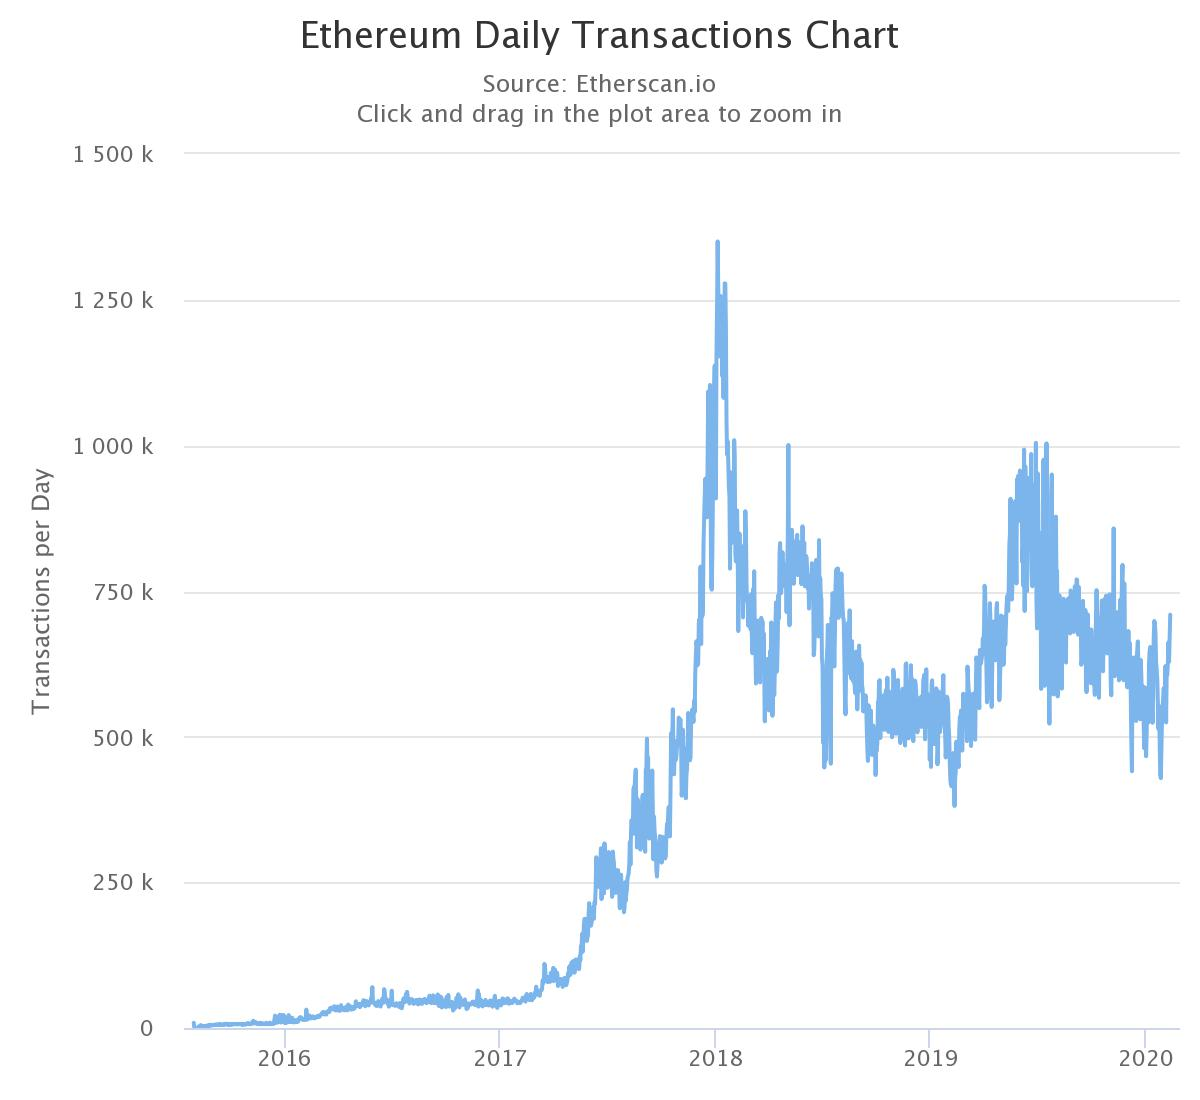 Source: Etherscan